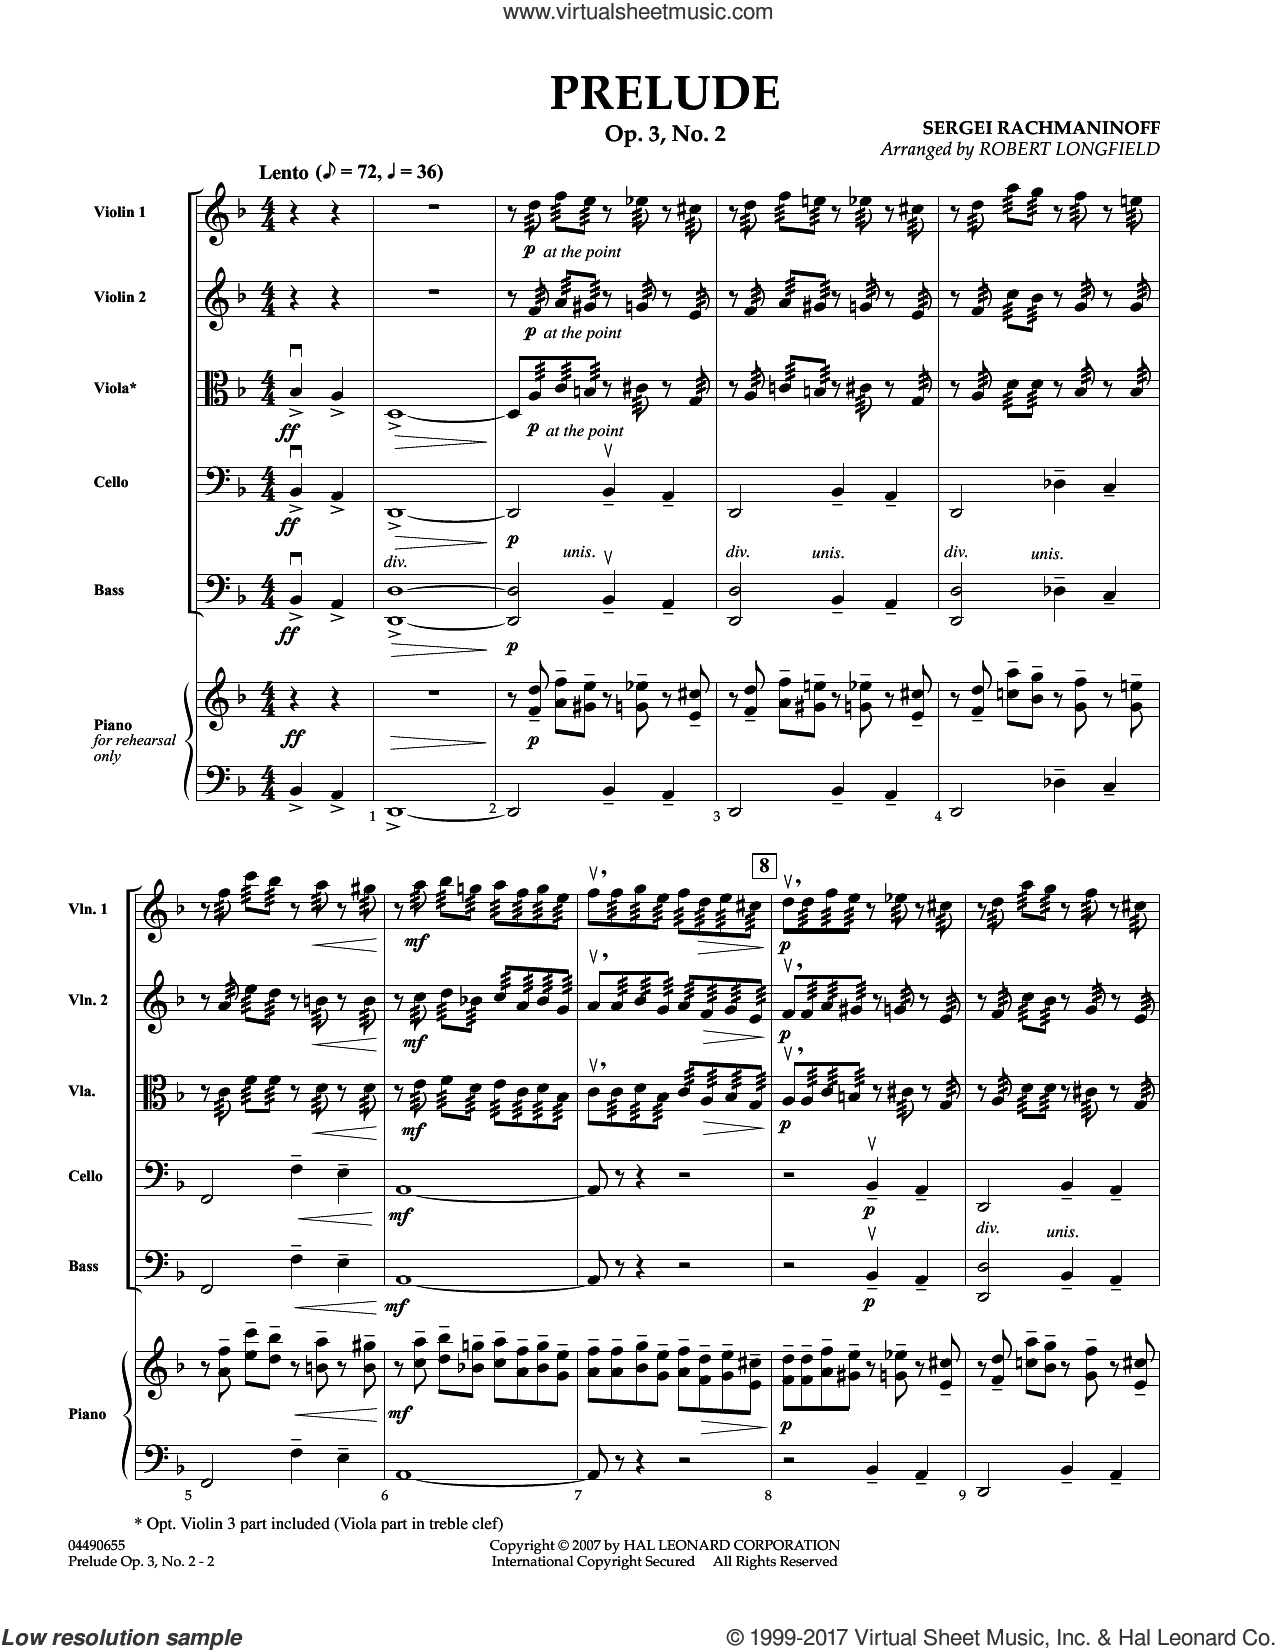 Prelude Op.3, No. 2 (COMPLETE) sheet music for orchestra by Robert Longfield and Serjeij Rachmaninoff, classical score, intermediate. Score Image Preview.